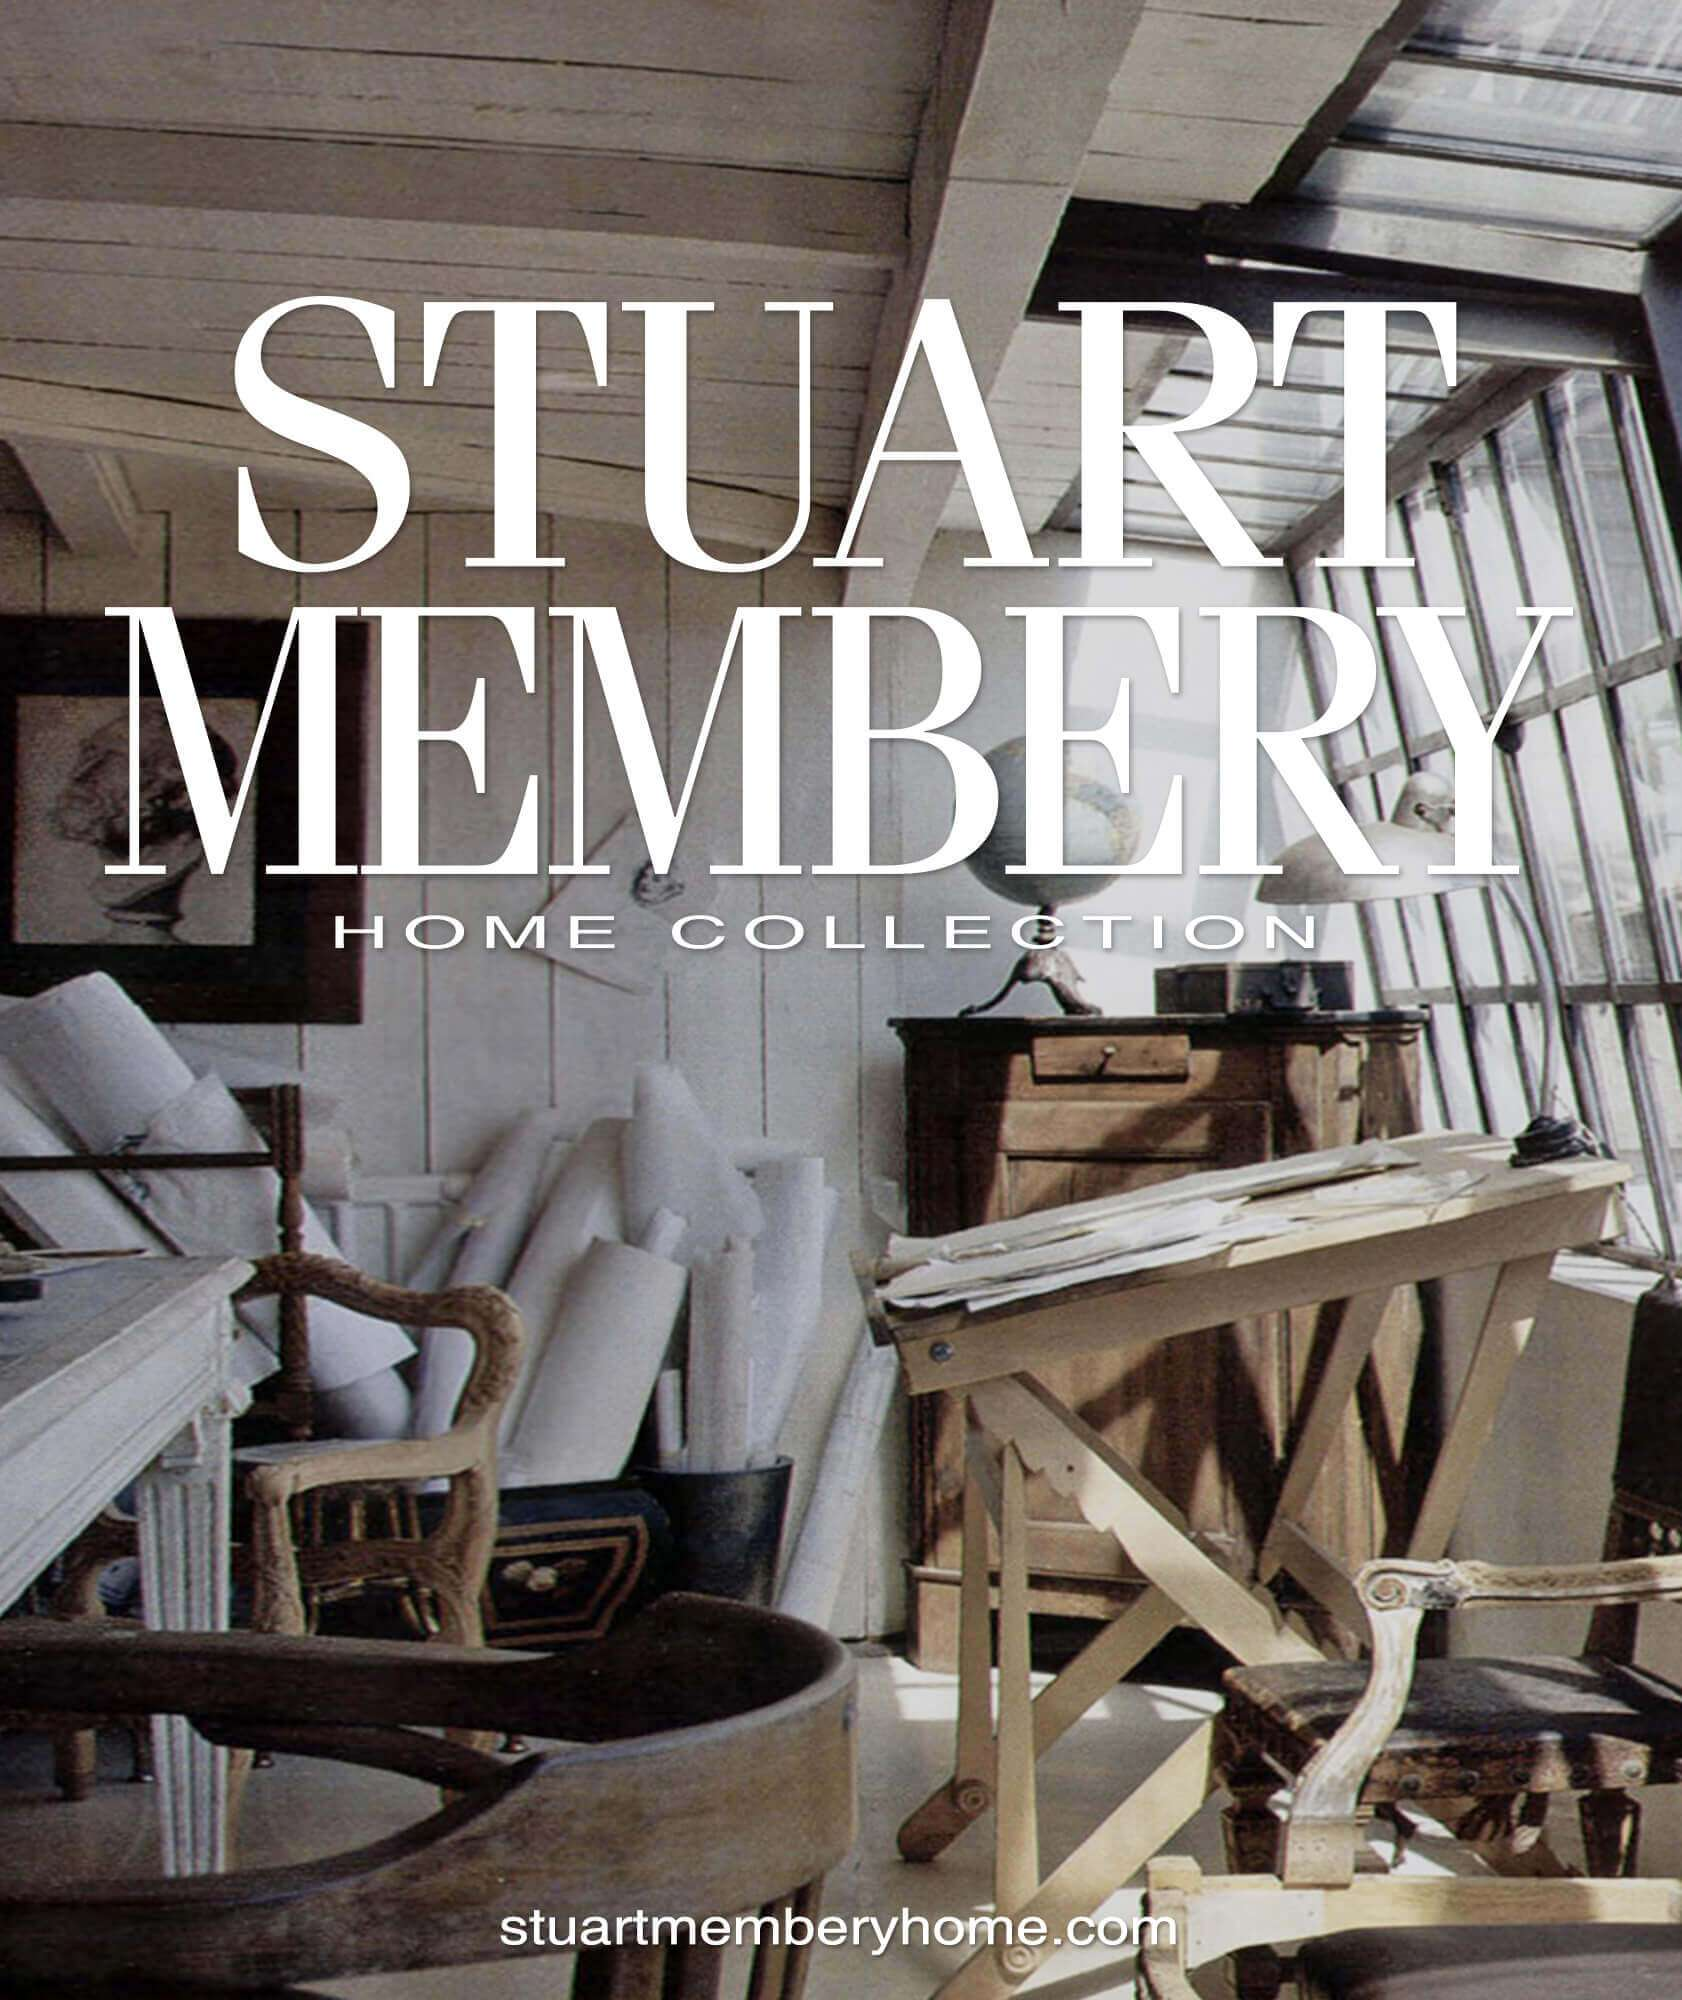 Sign into STUART MEMBERY HOME